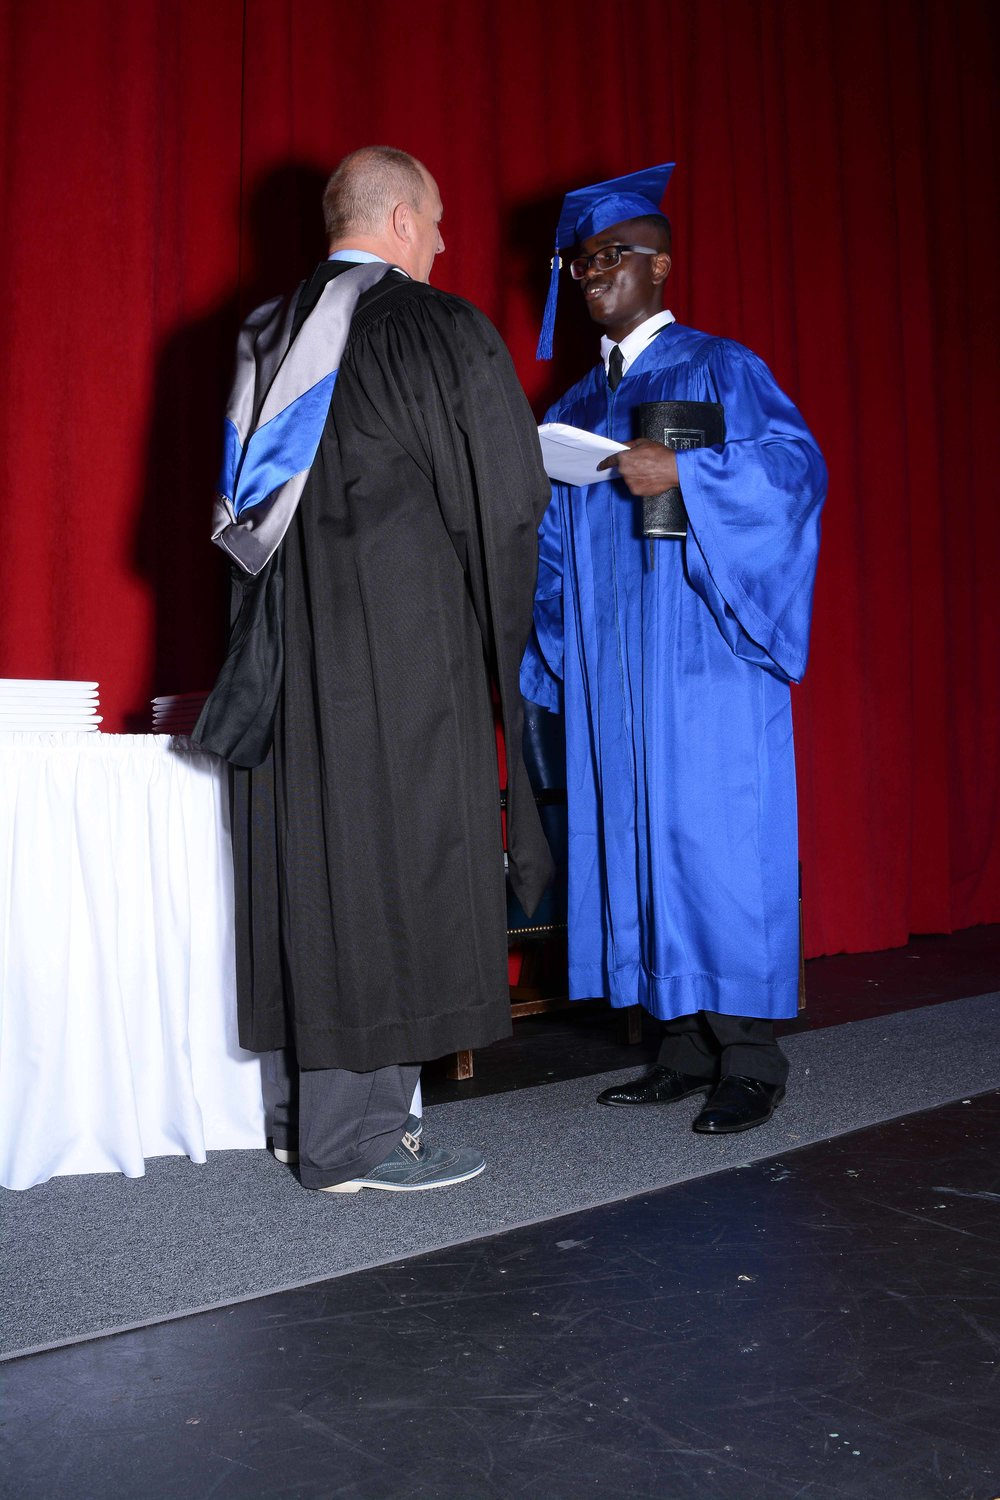 May14 Commencement153.jpg